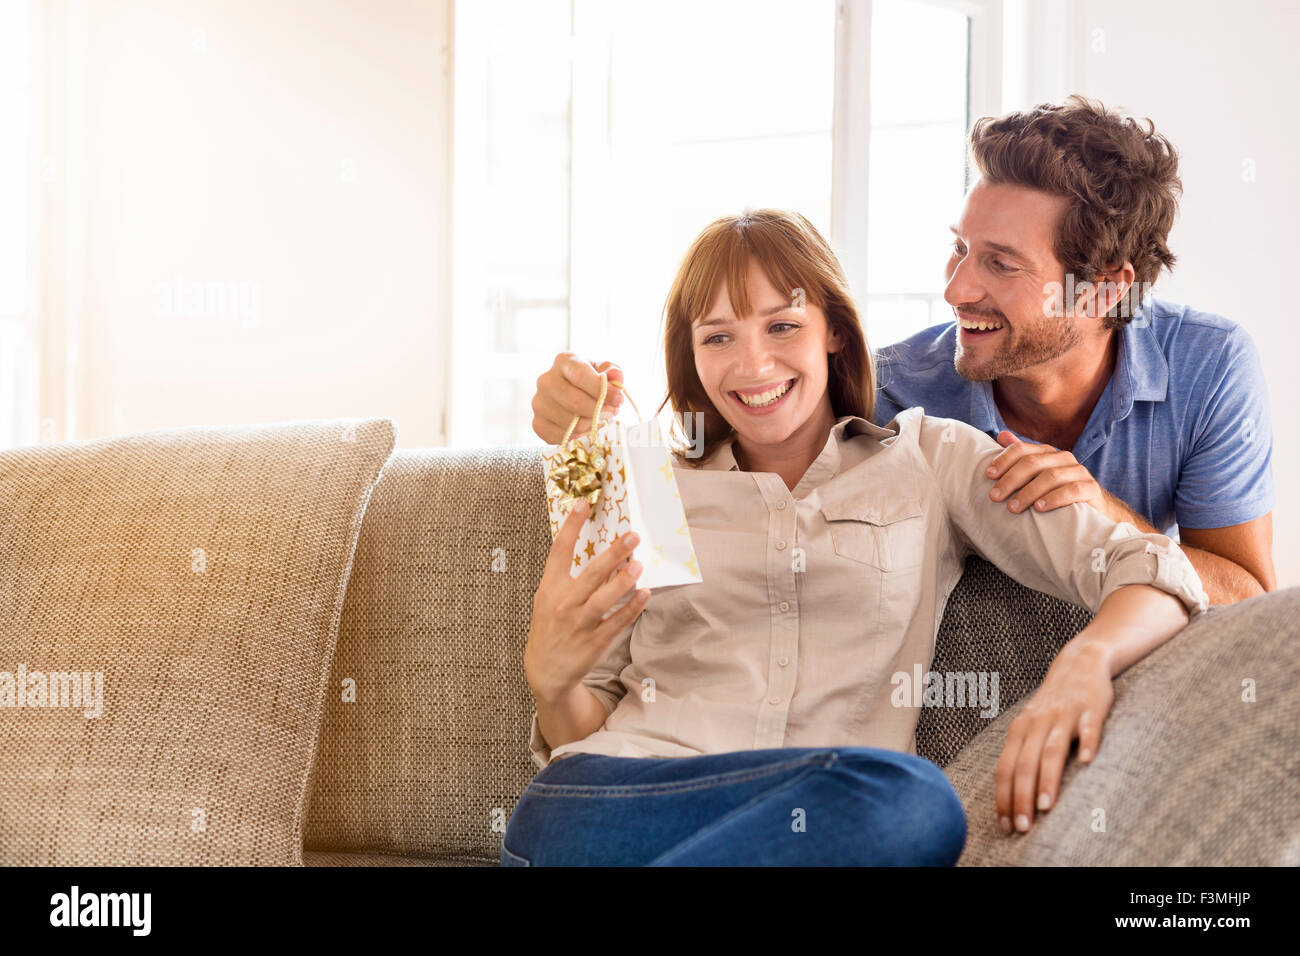 Man offering a gift to his wife for birthday. Gift, sofa, home, girlfriend, couple - Stock Image